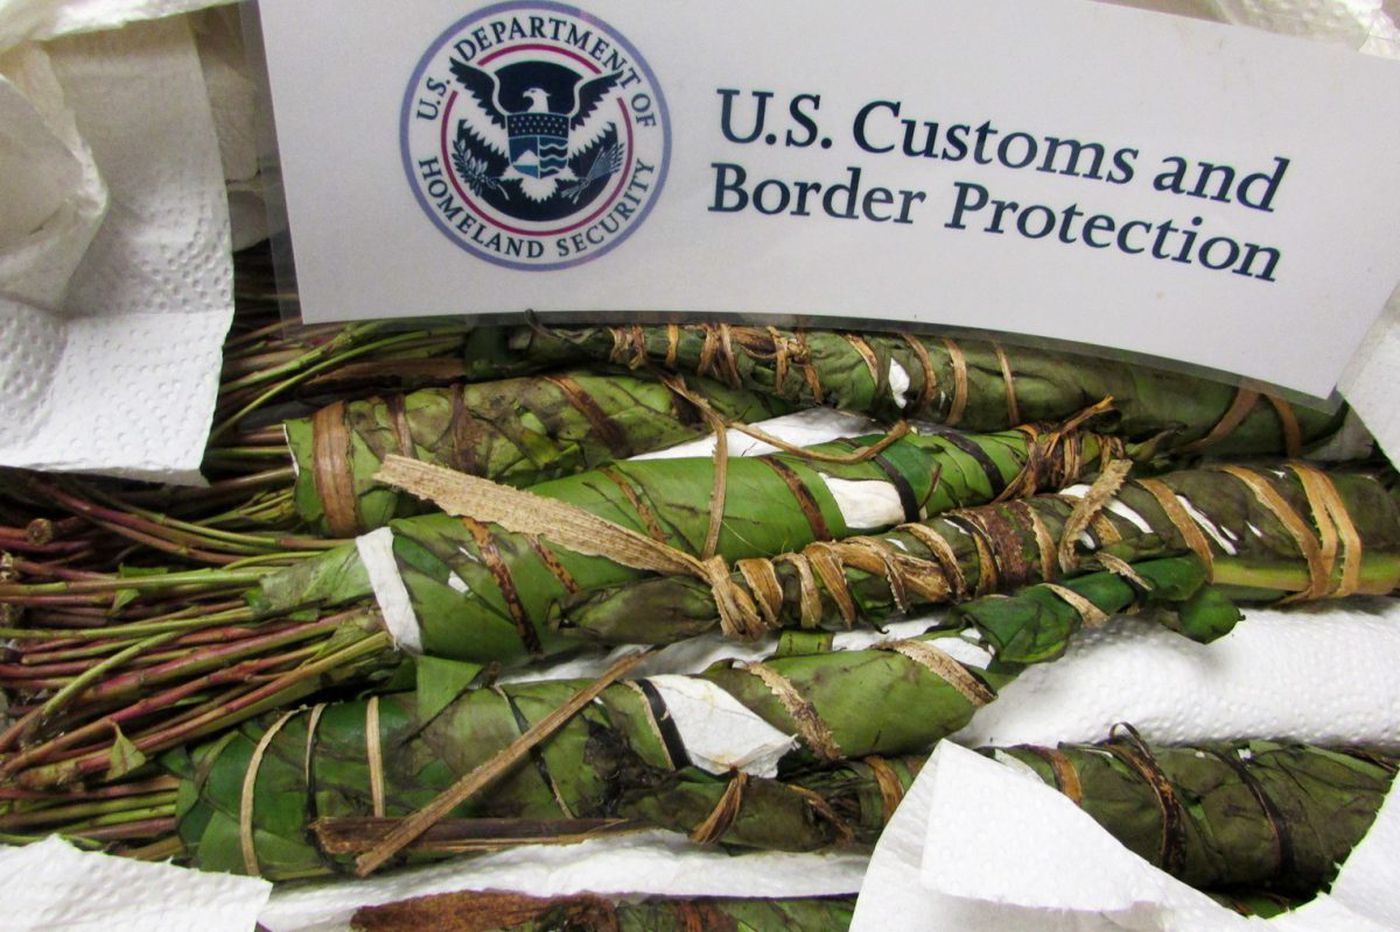 Officers seize 69 pounds of khat at PHL